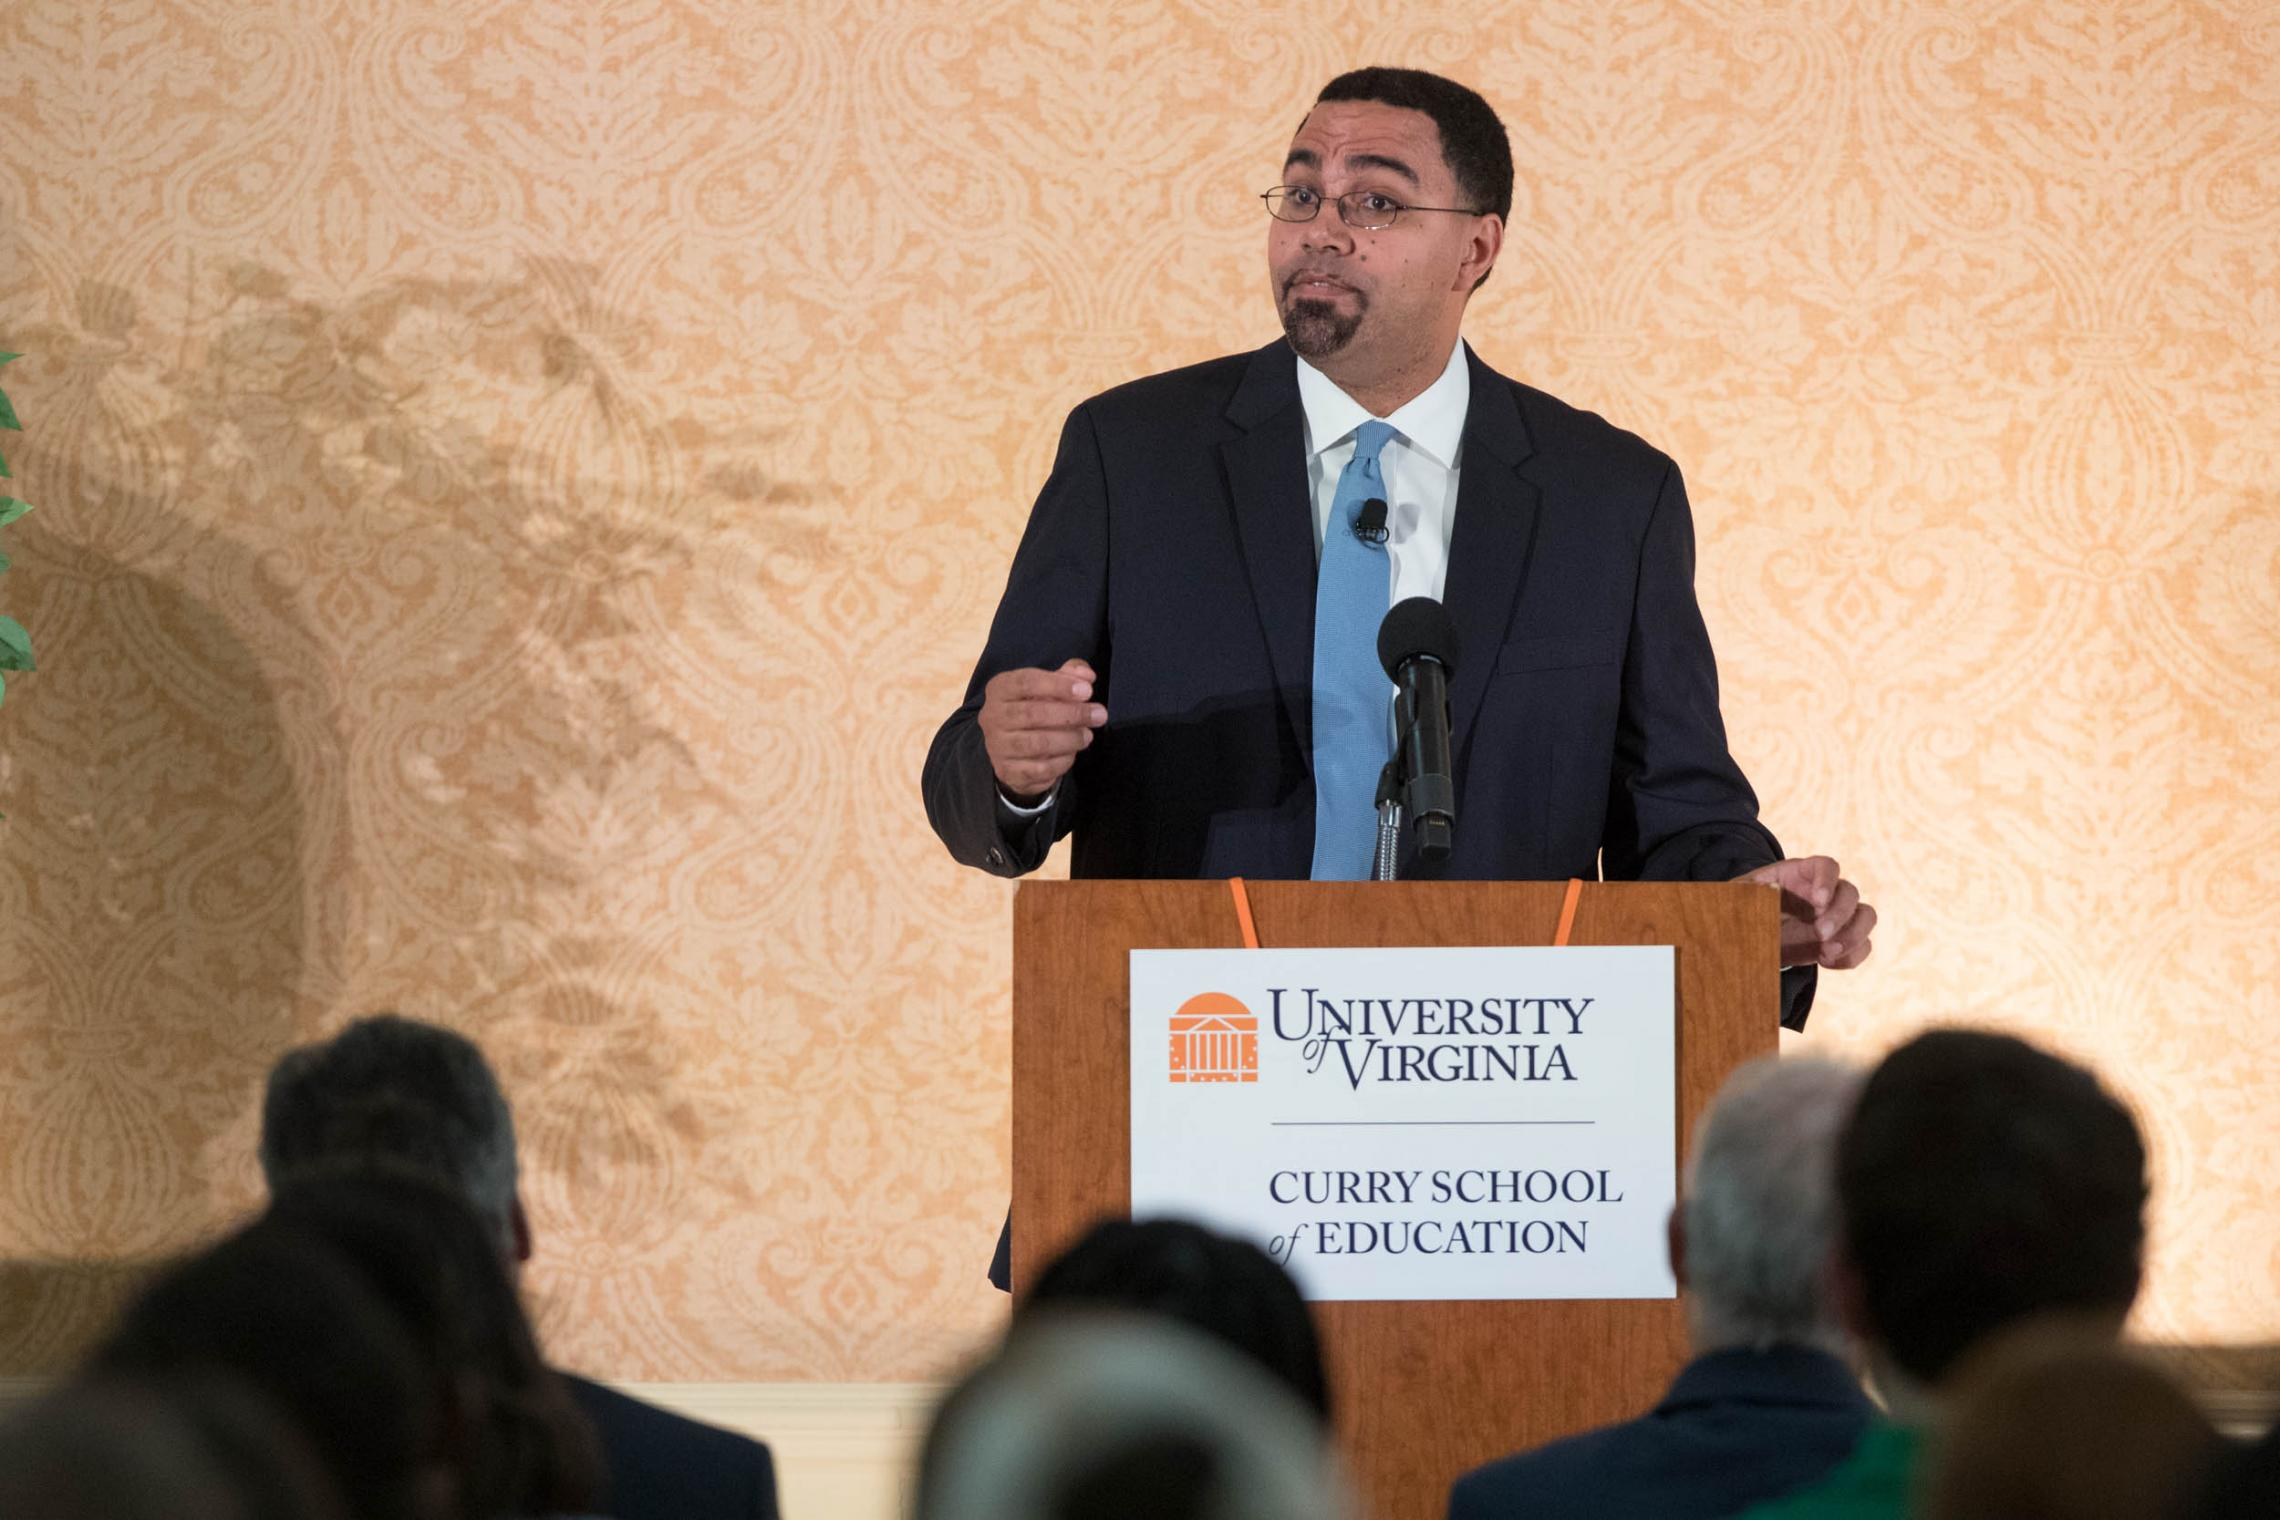 U.S. Secretary of Education John B. King Jr. addressed Curry School students on Wednesday as part of the annual Walter N. Ridley Distinguished Speaker Series. (Photo by Sanjay Suchak, University Communications)